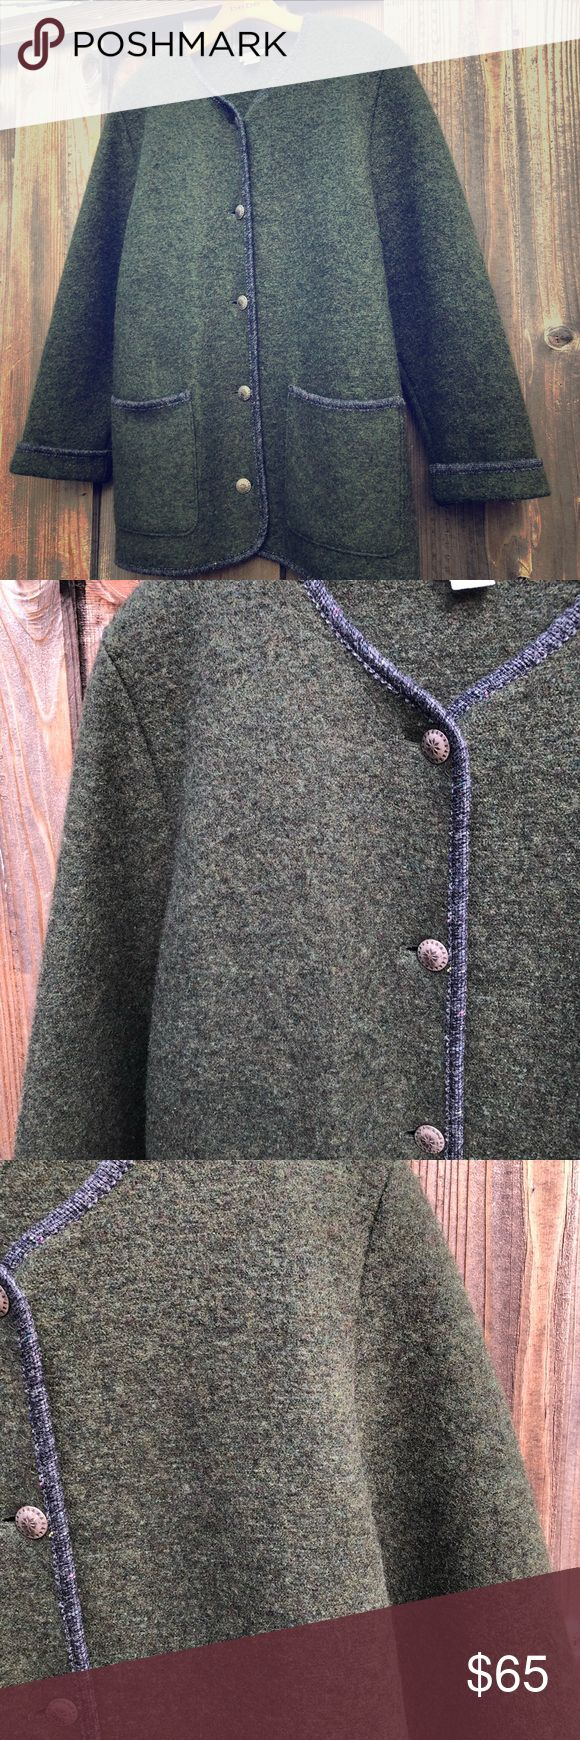 """Vintage LL Bean Green Wool Coat Austria 14-16 L Gorgeous green vintage boiled wool coat. Made in Austria. You won't get cold in this! Size Large women's. Perfect vintage condition and well cared for. No holes, stains etc. Features large metal buttons with spare button  sewn into inside seam.   Length 31"""" Shoulder to cuff sleeve 25"""" Neck to shoulder 6"""" Bust 19"""" measured armpit to armpit flat across (48"""") Armpit to cuff measures 16"""" Shoulder to shoulder seam 16"""" flat across  Non smoking home…"""